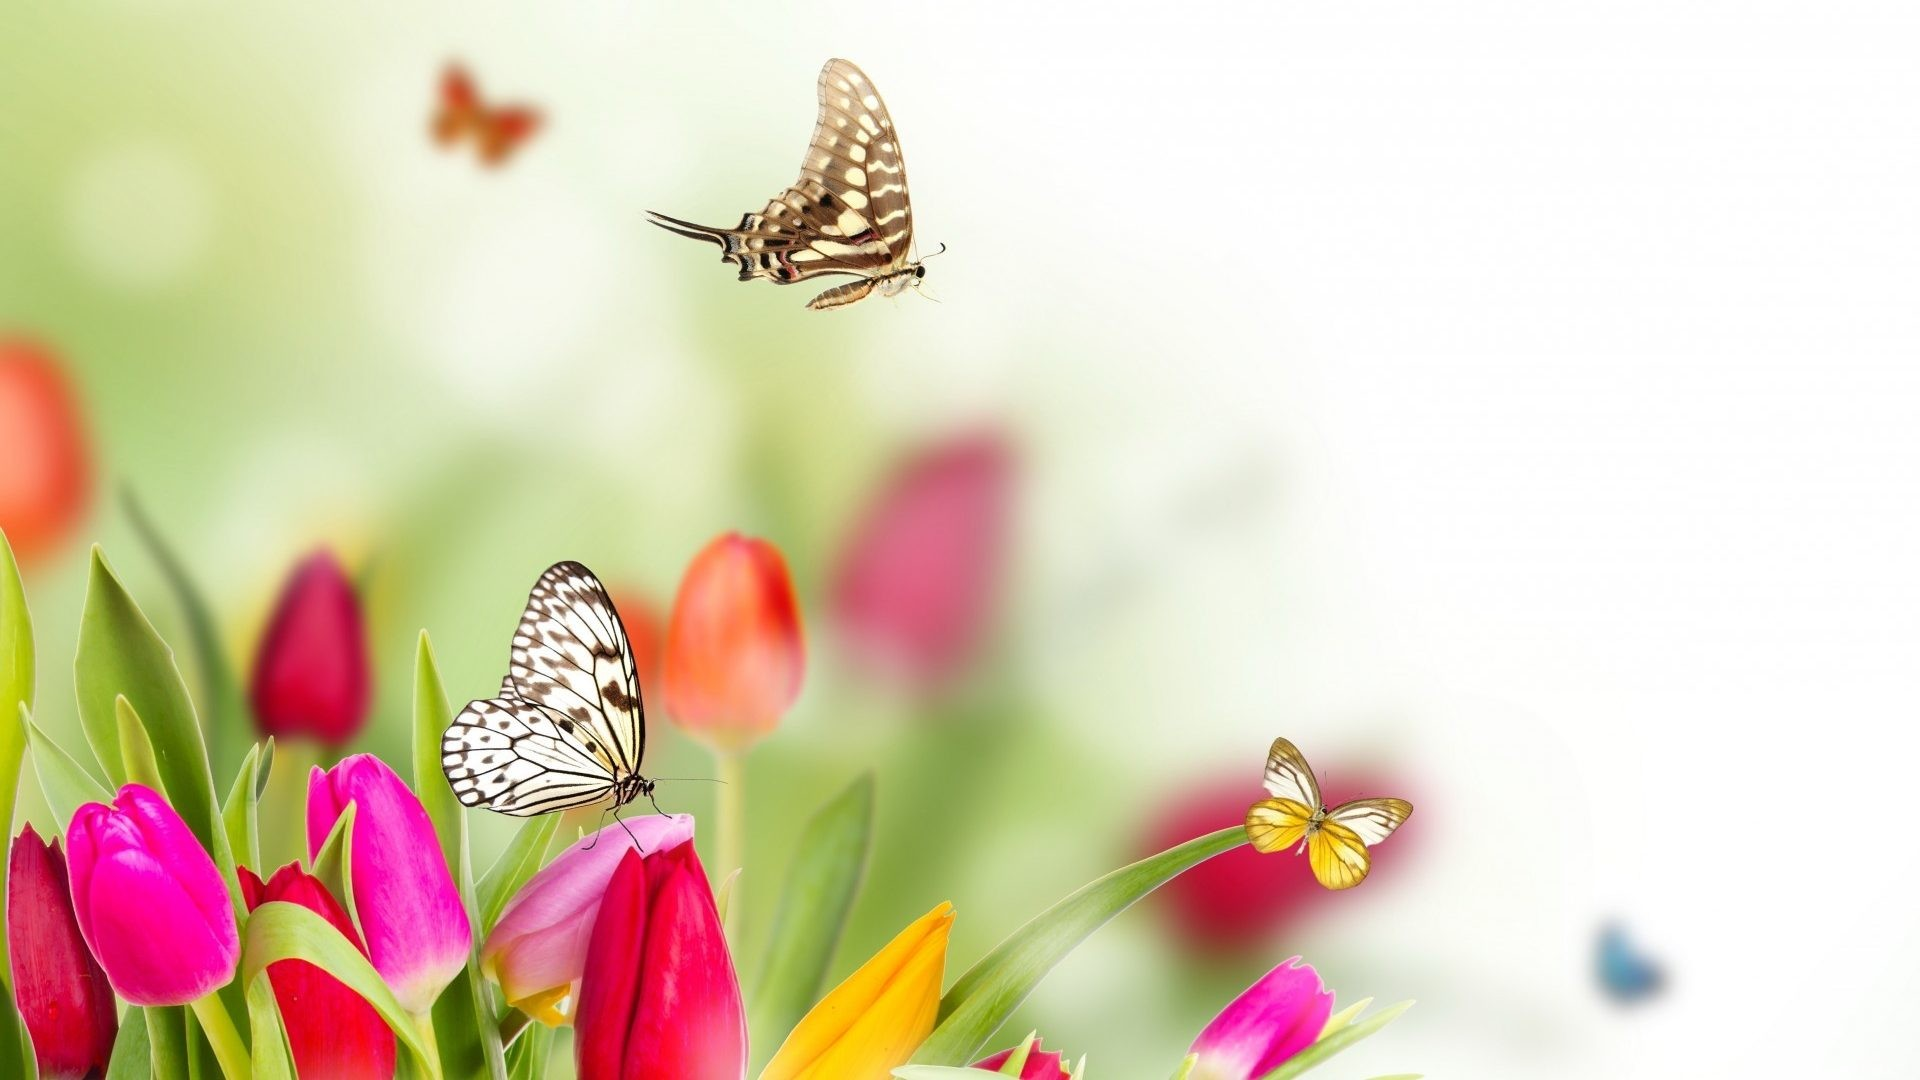 Tulips Tag – Flowers Butterflies Spring Tulips Nature Wallpaper Download  For Mobile Phone for HD 16